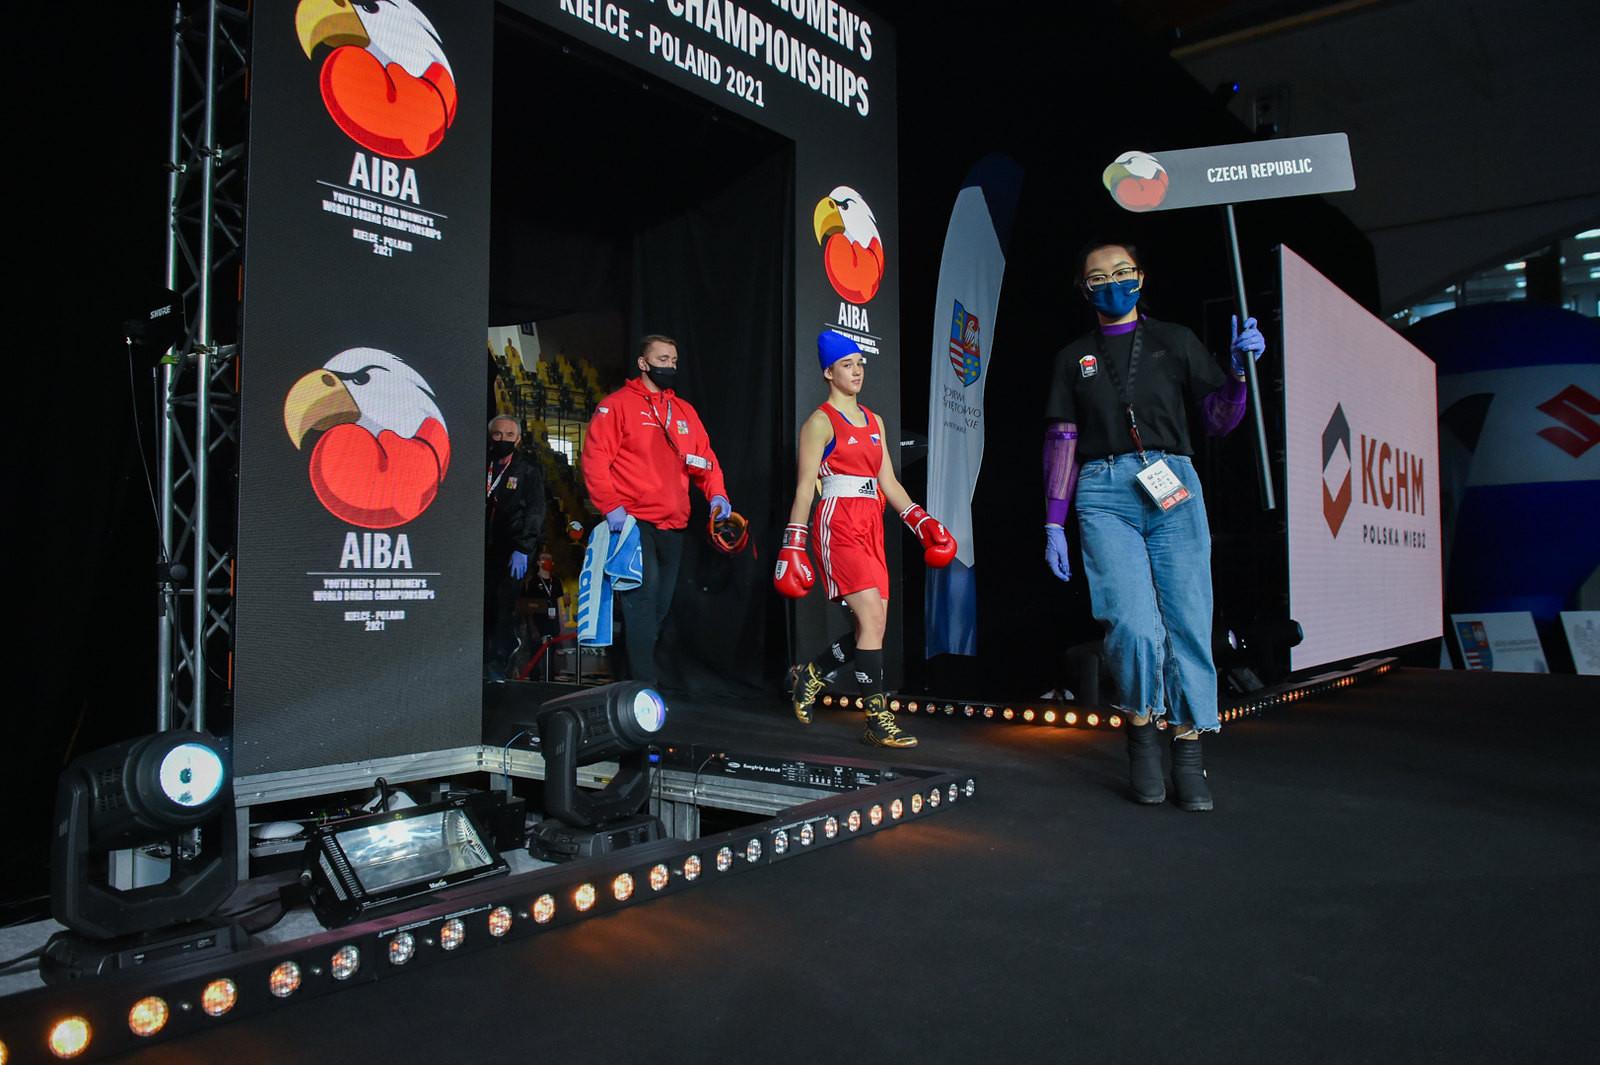 A fighter from the Czech Republic makes her way into the ring ©AIBA